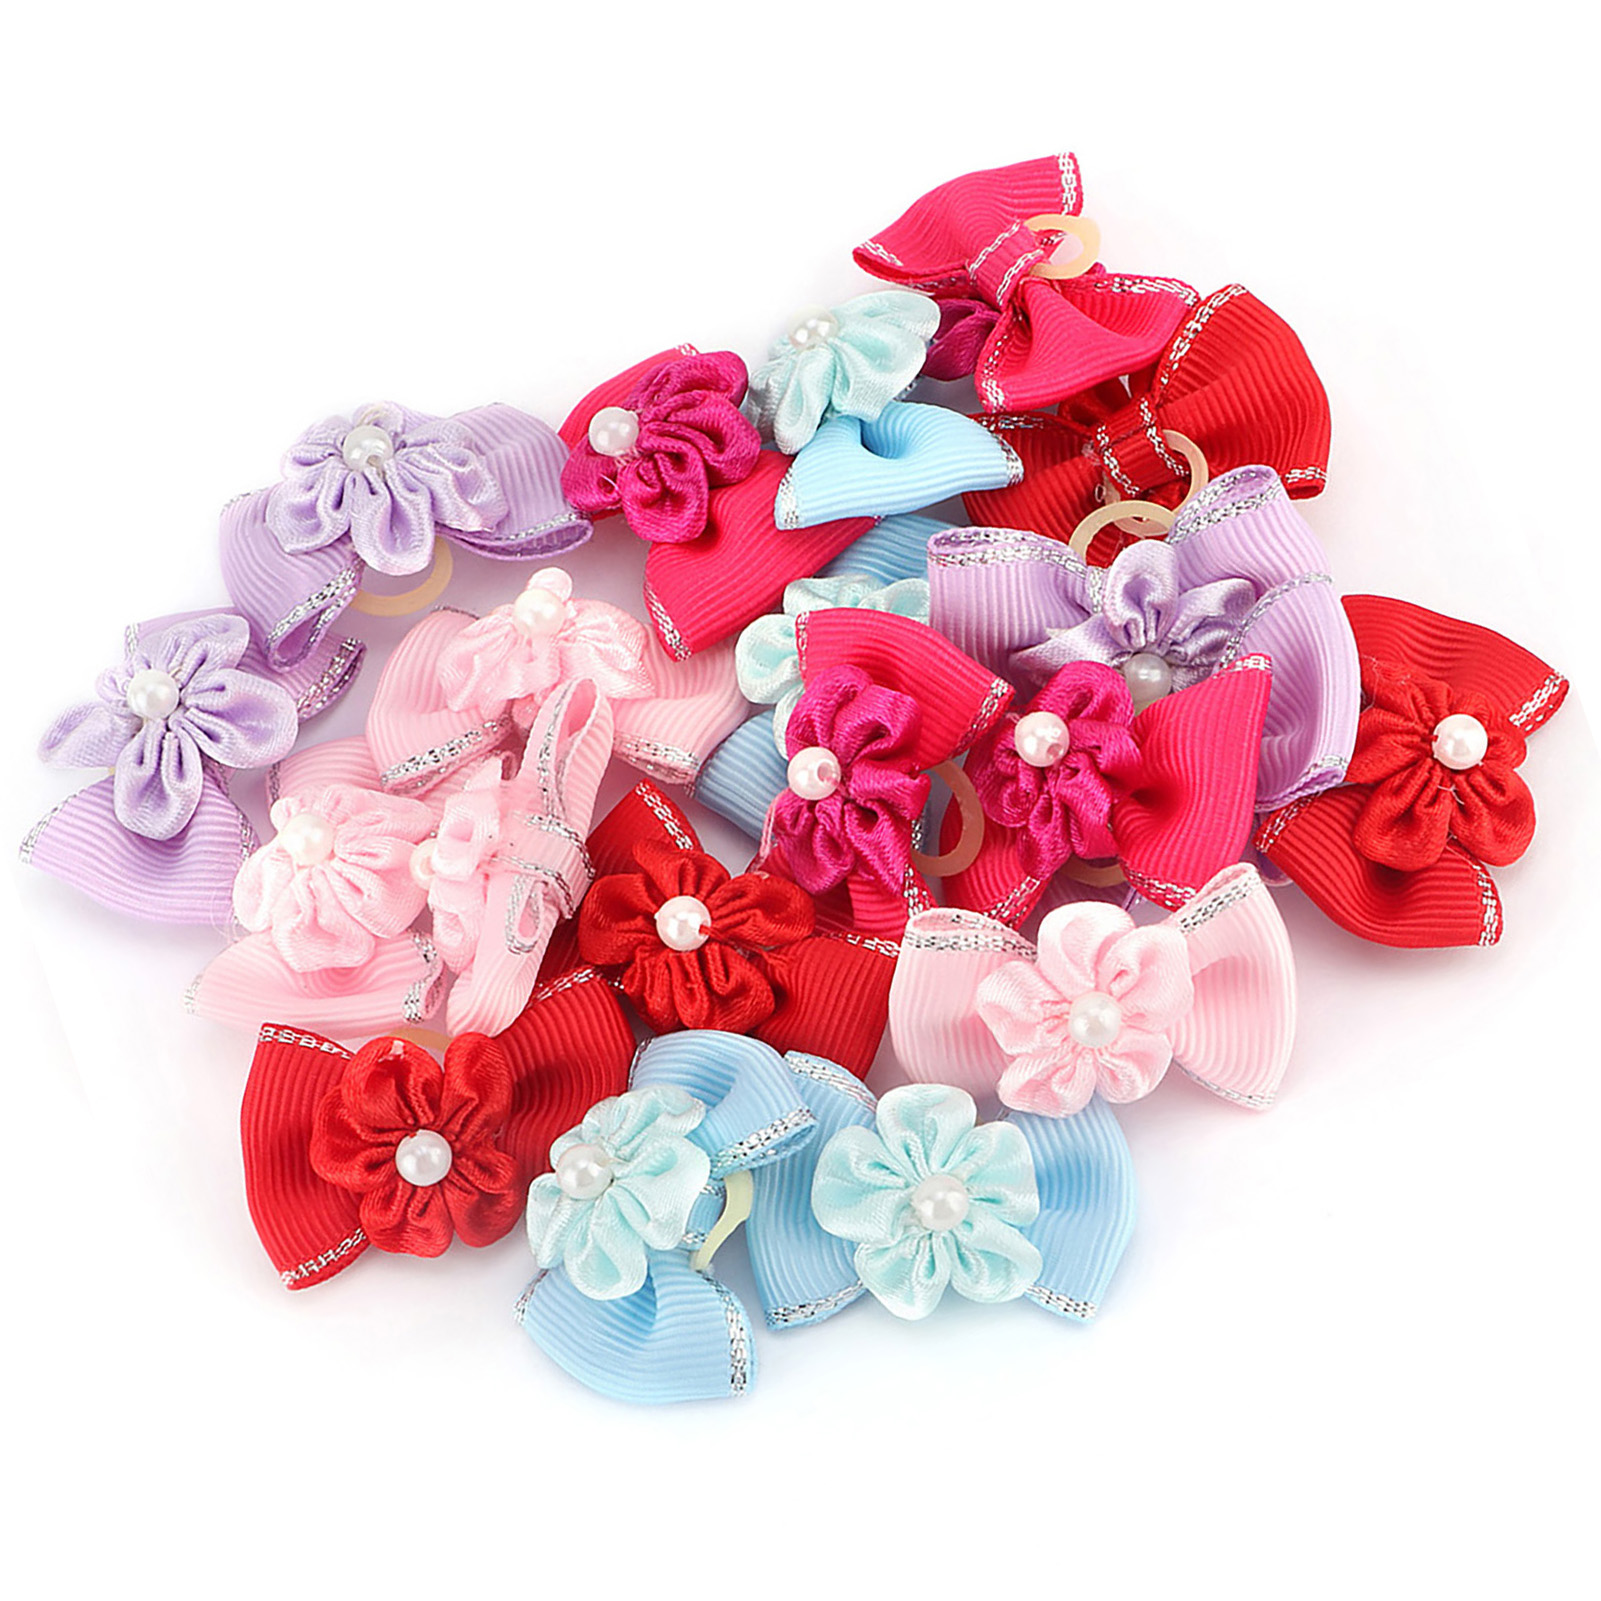 10-20-30Pcs-Pet-Dog-Hair-Bow-Rubber-Band-Small-Cat-Puppy-Bowknot-Grooming thumbnail 18